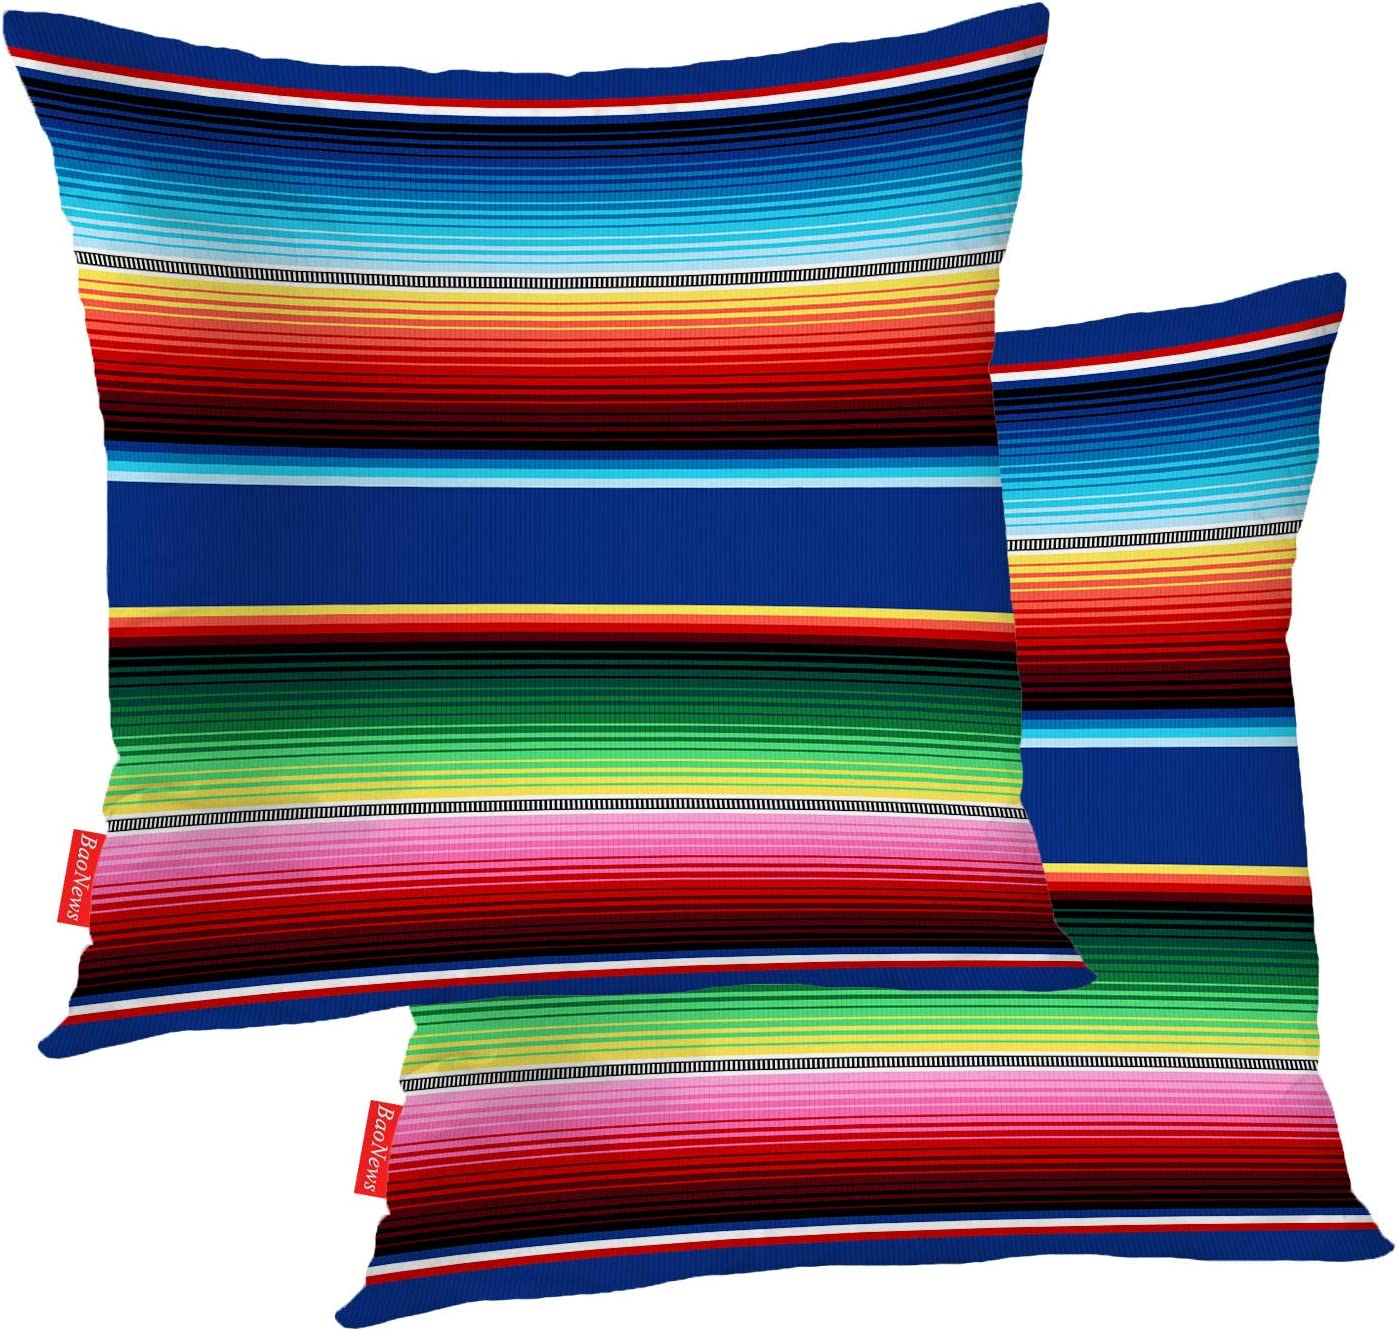 BaoNews Mexican Colorful Pillow Covers, Stripes Pattern Party Decor Ethnic Mexican Fabric Square 16 x 16 Inches Decorative Throw Pillow Covers Cotton Cushion for Sofa Bedroom Car, Yellow, Set of 2